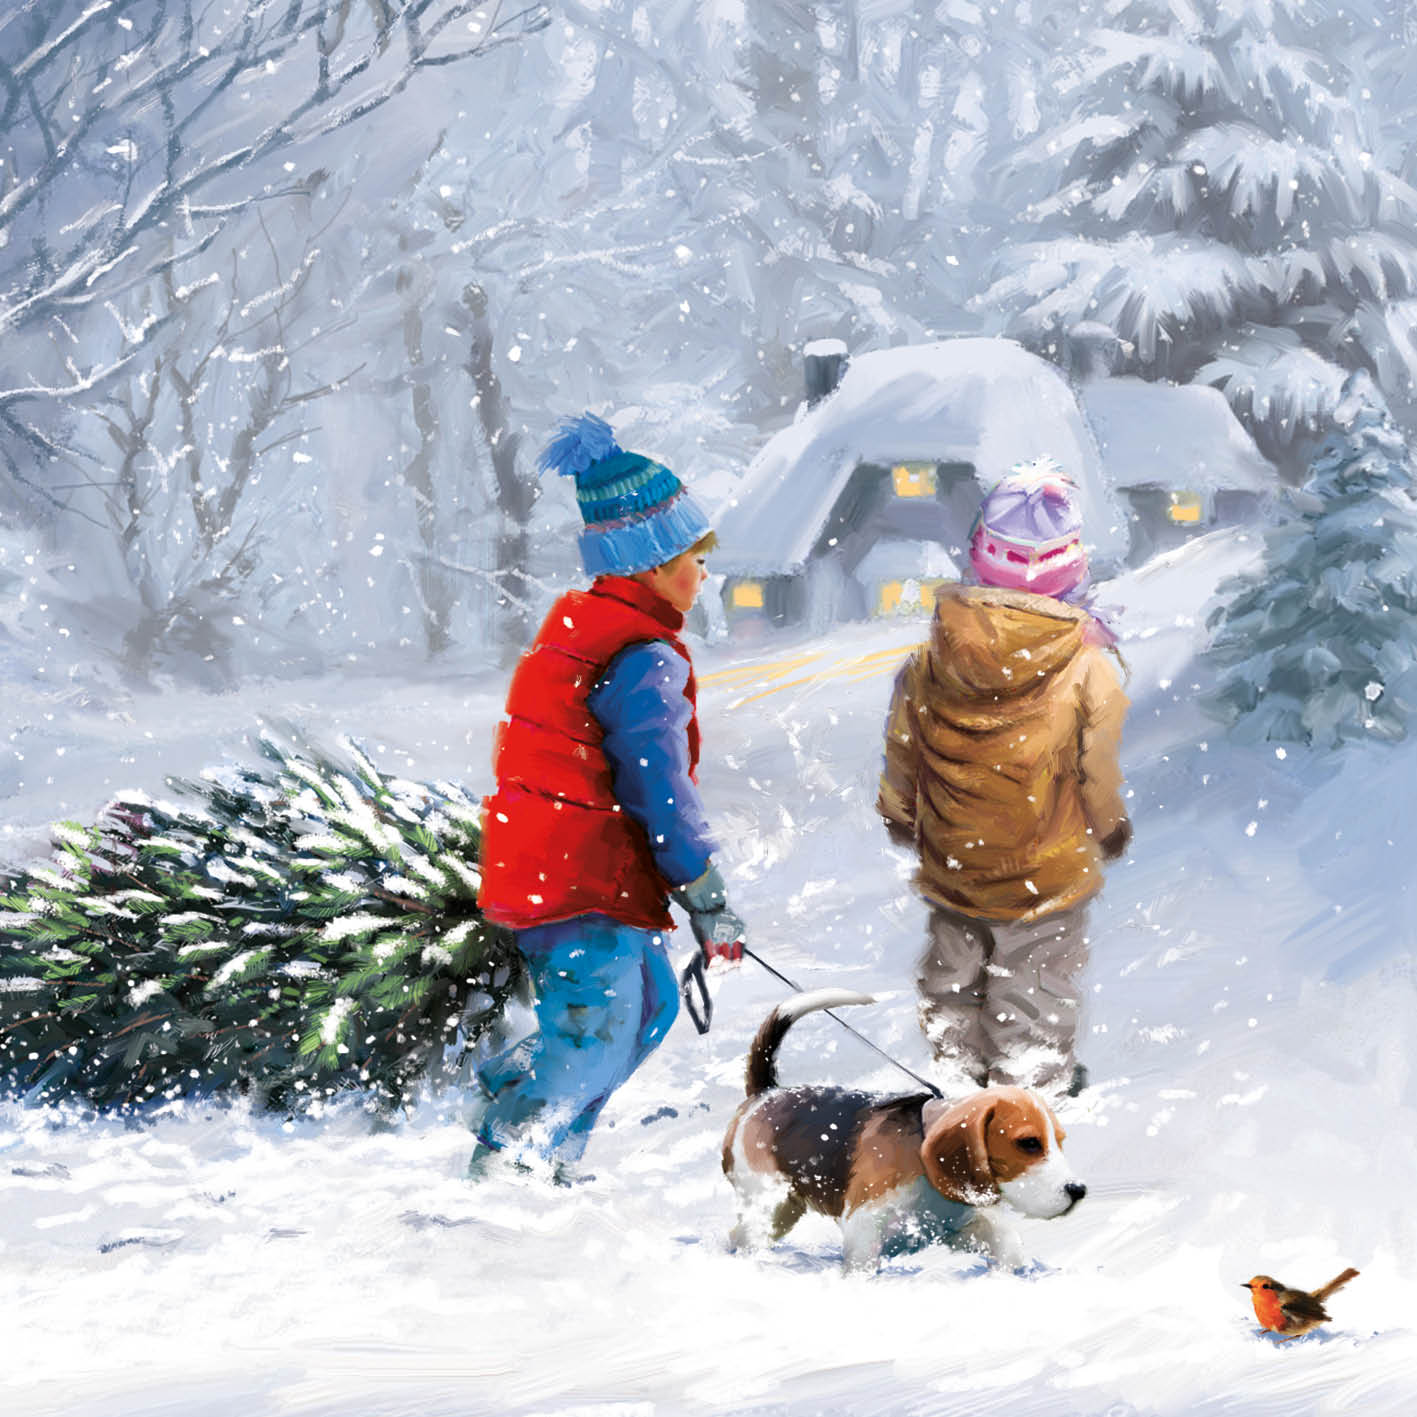 Kids in Snow - Christmas Card